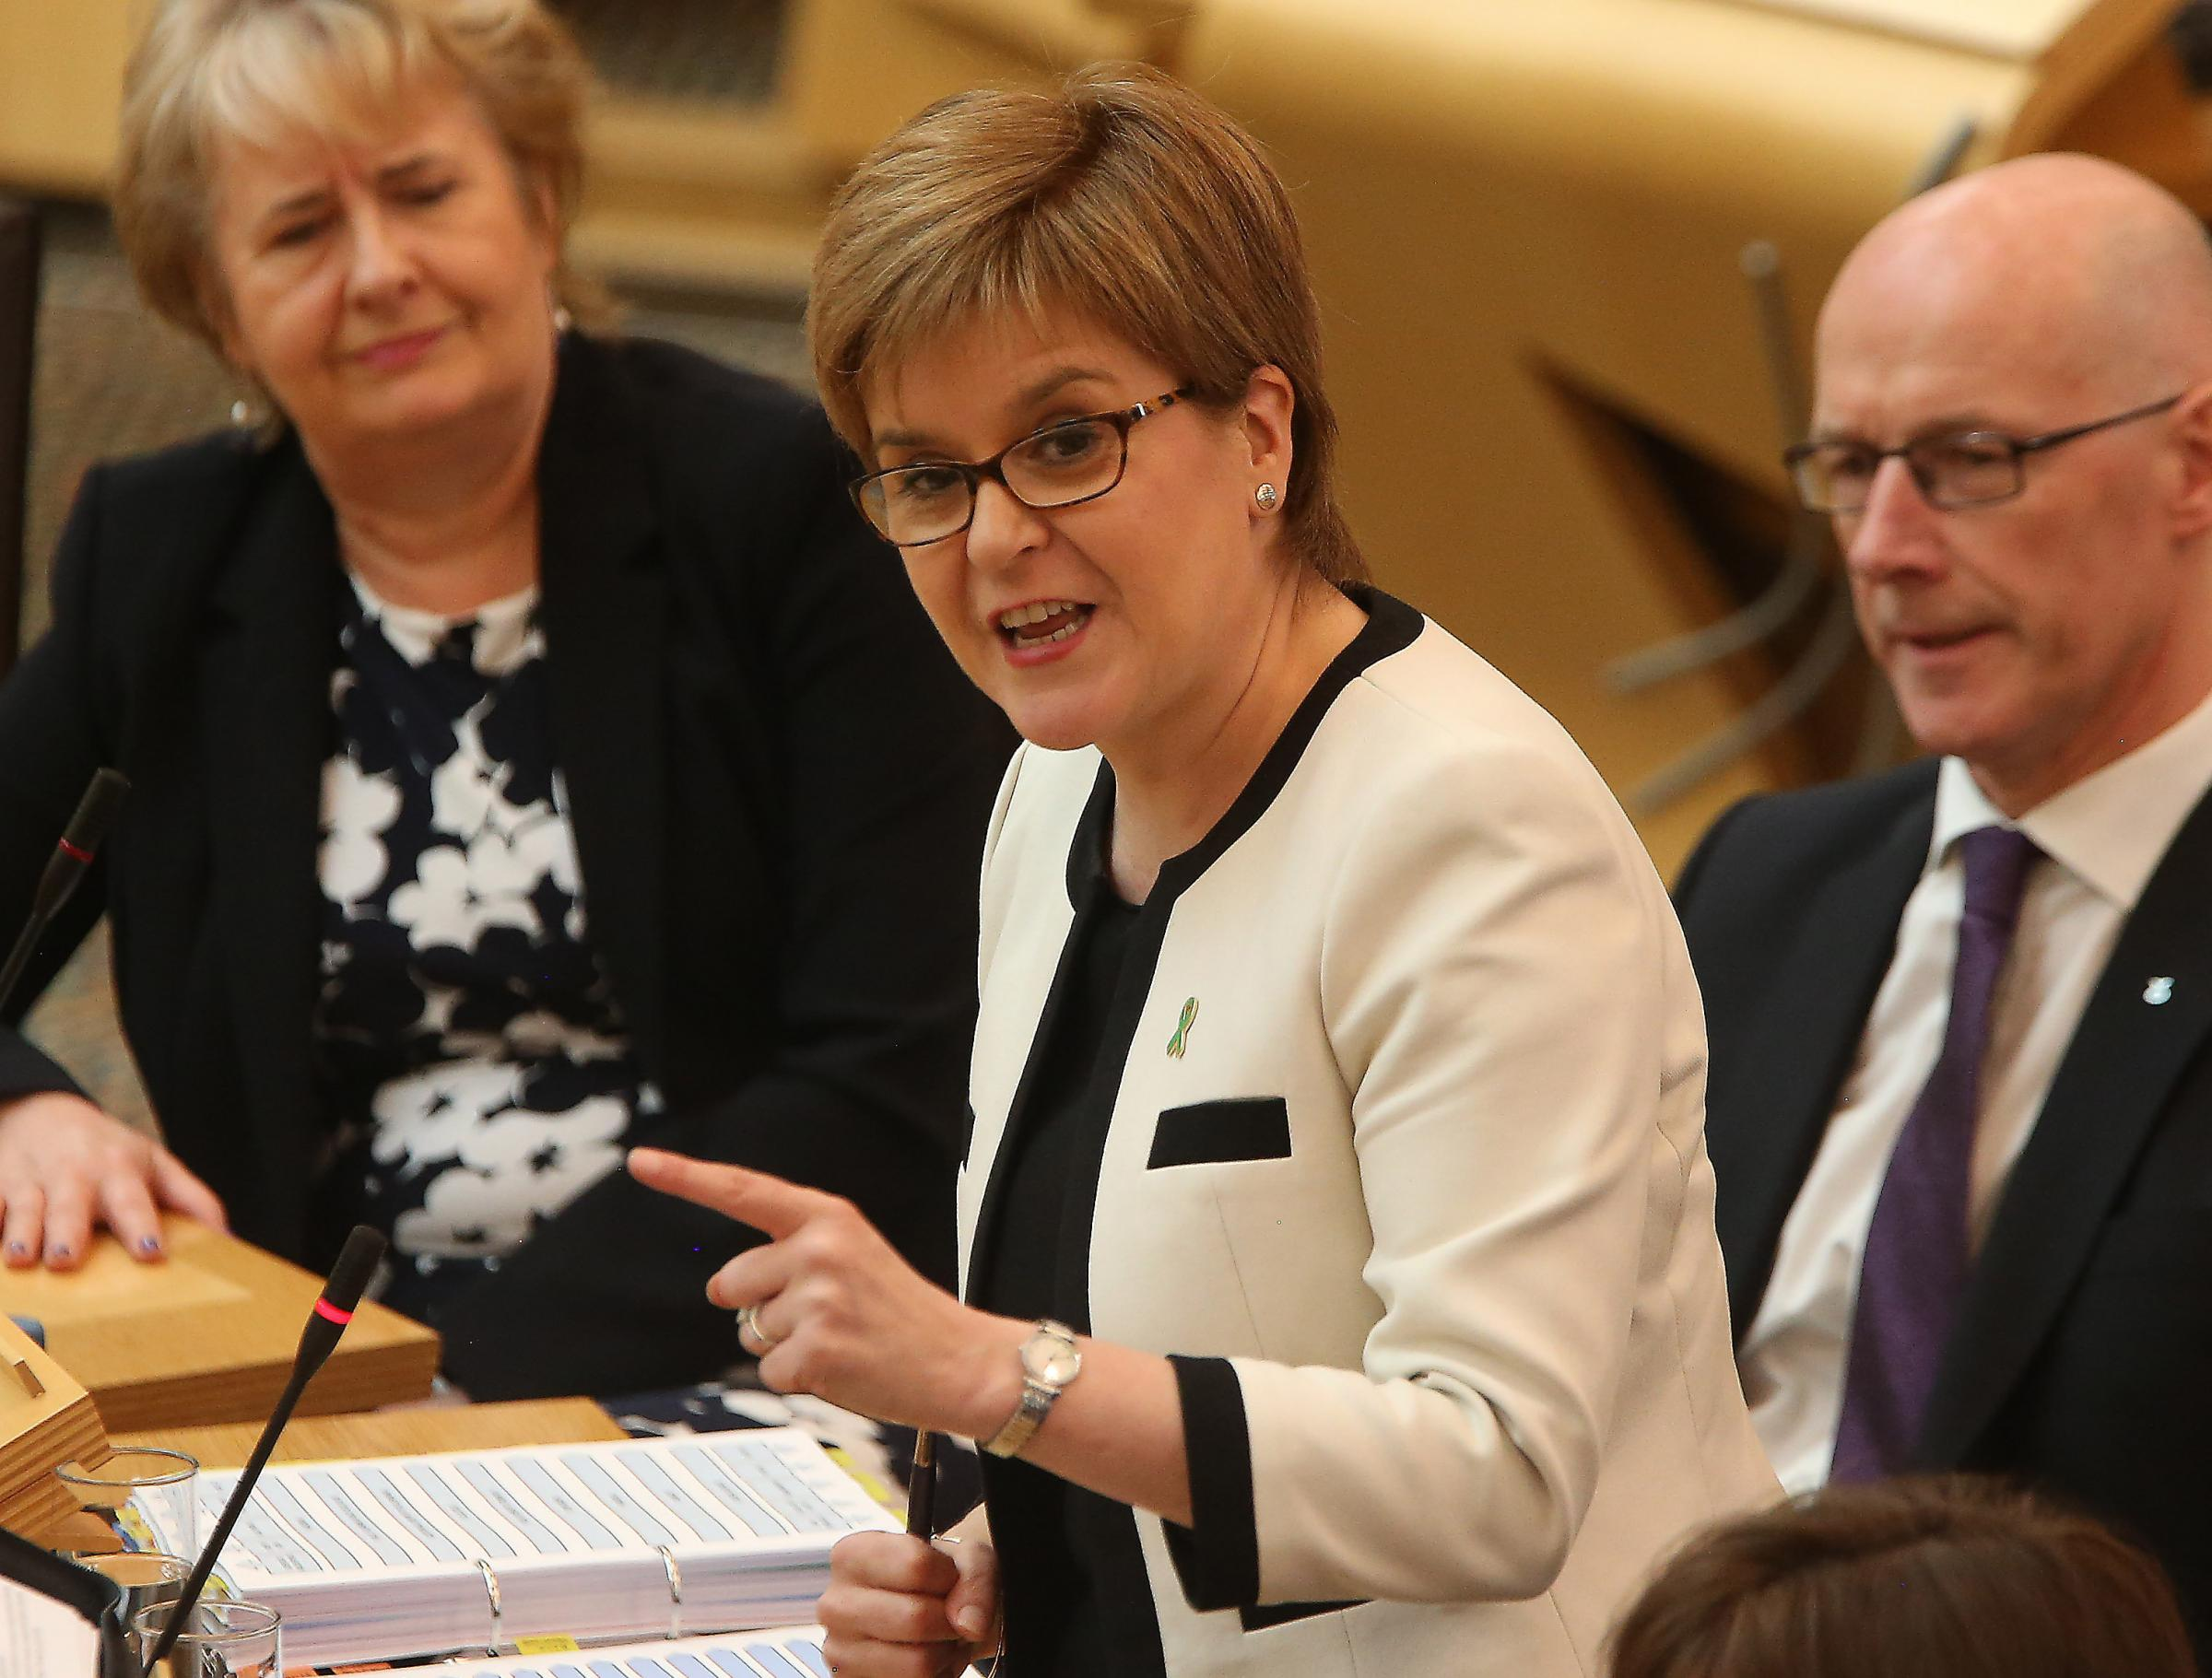 First Minister says hard Brexiteer PM would speed up indyref2